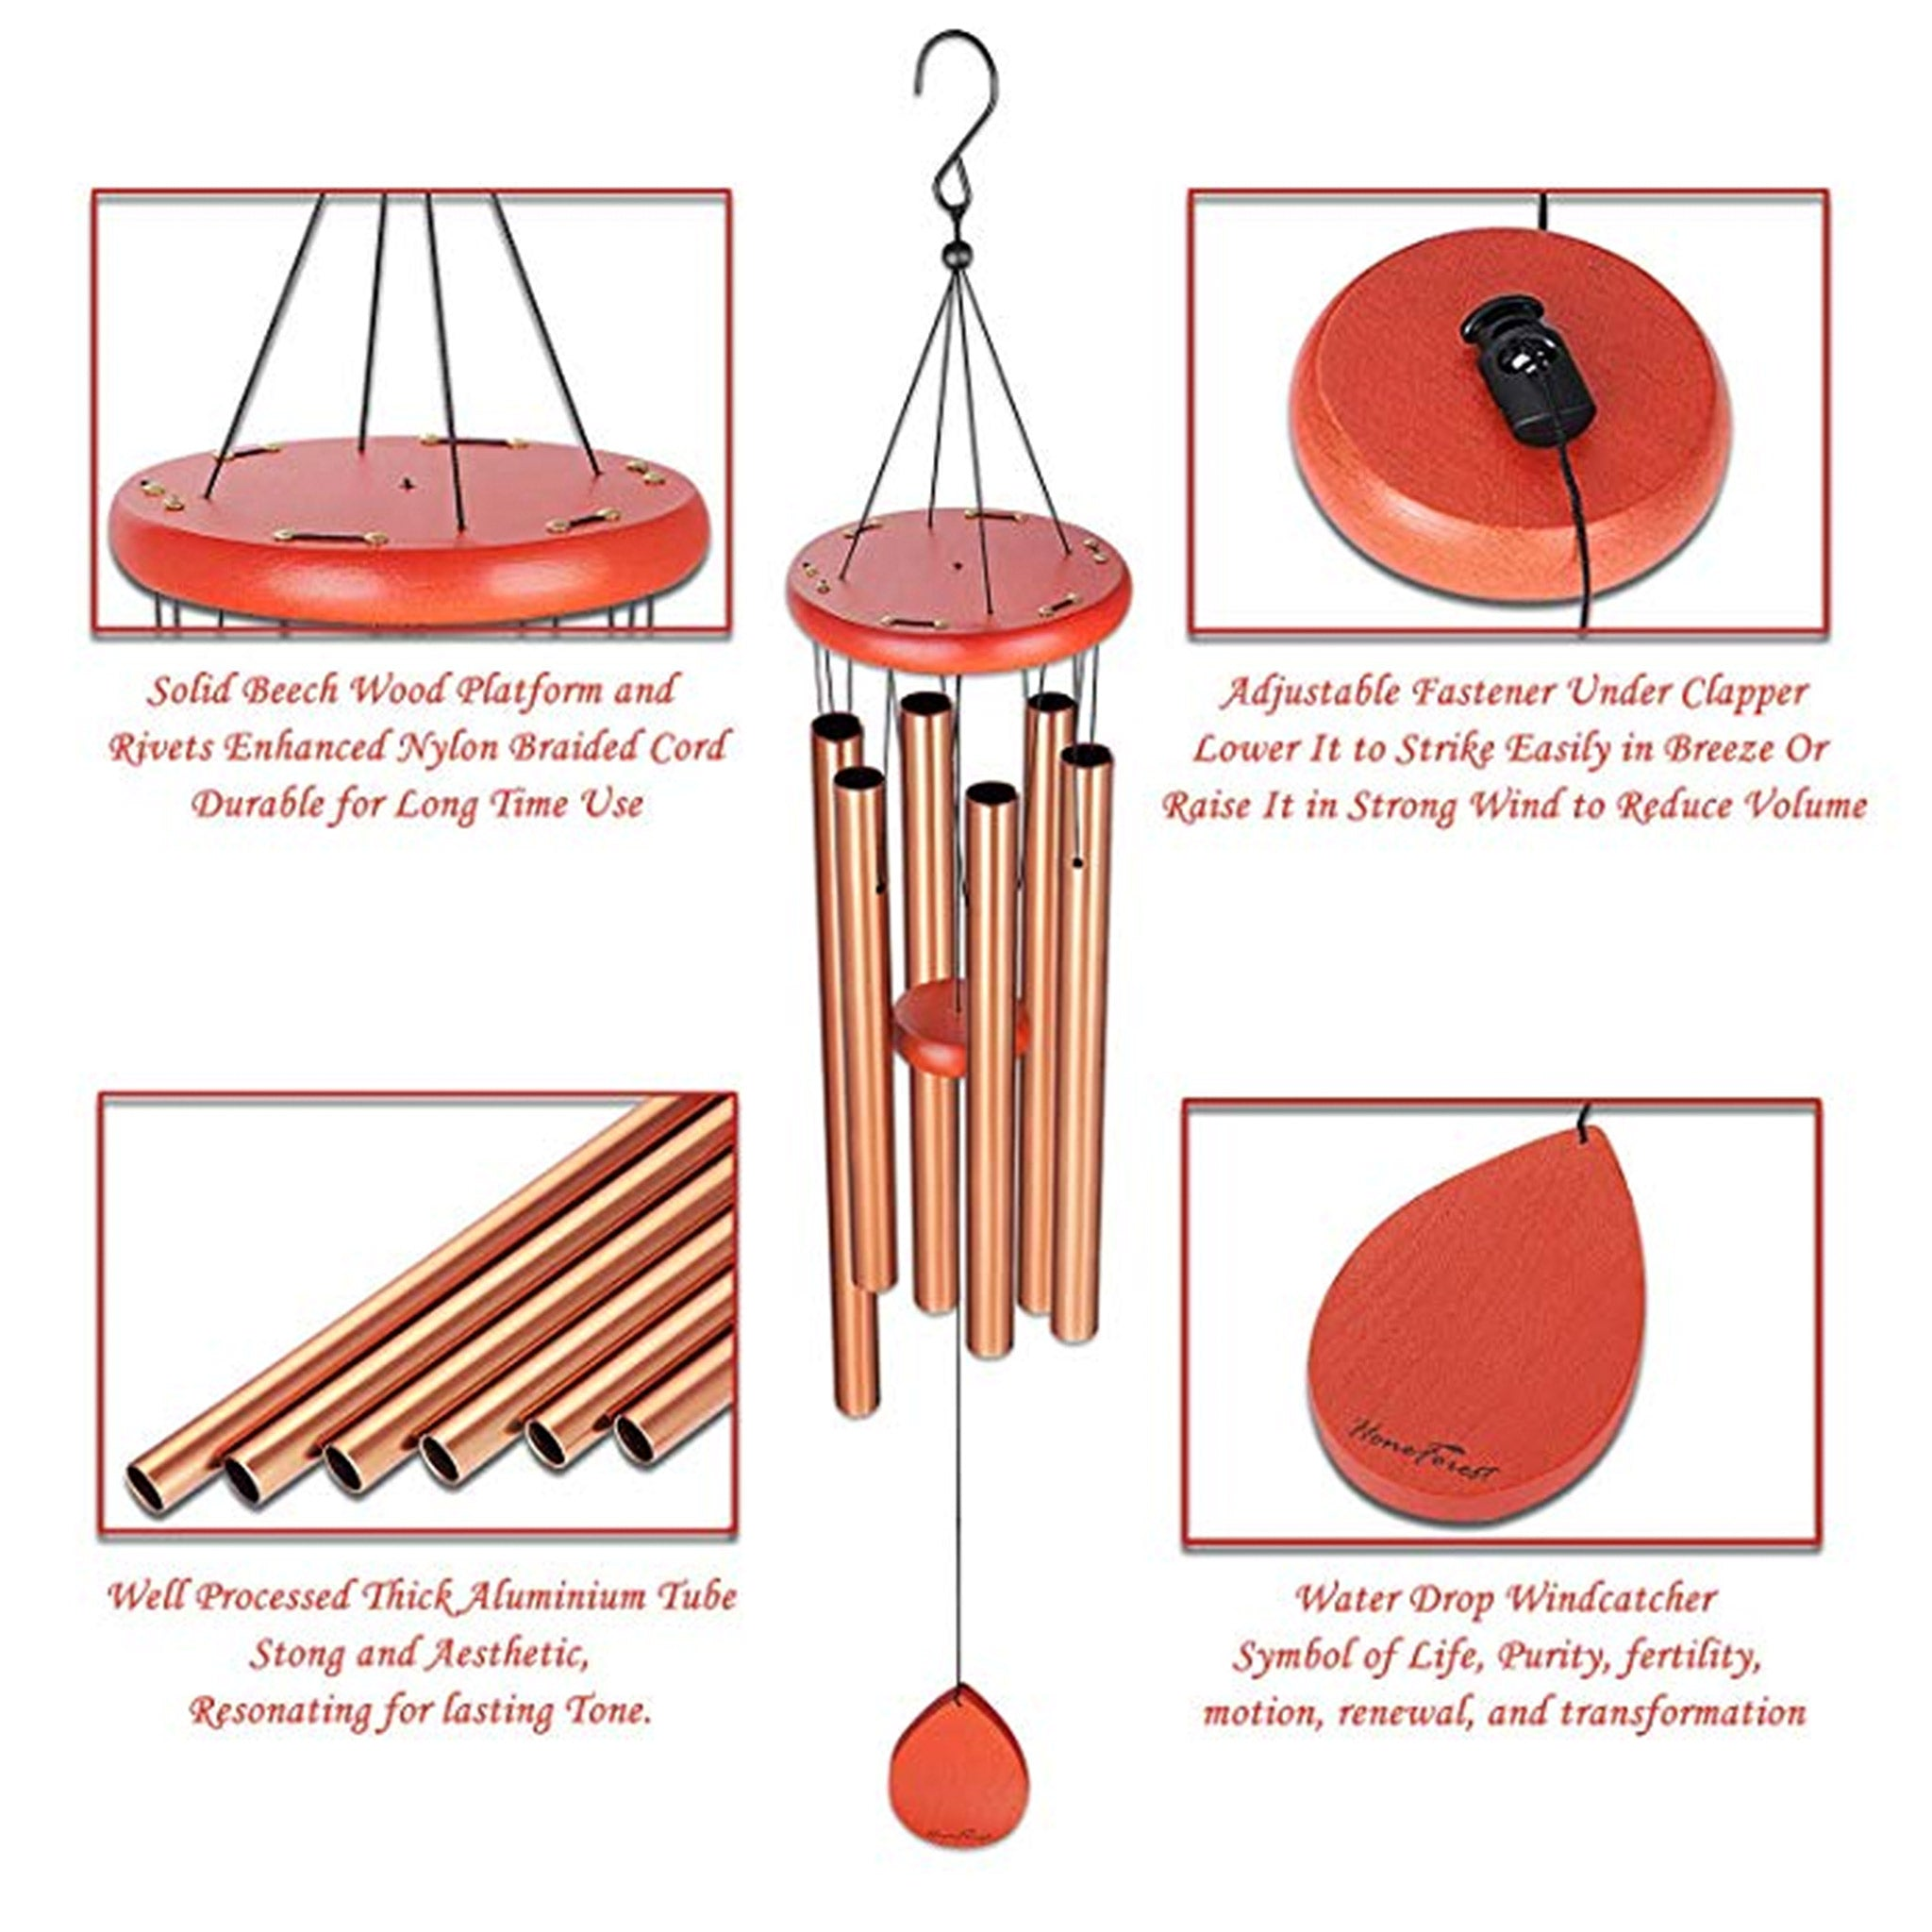 honeforest wind chime specs